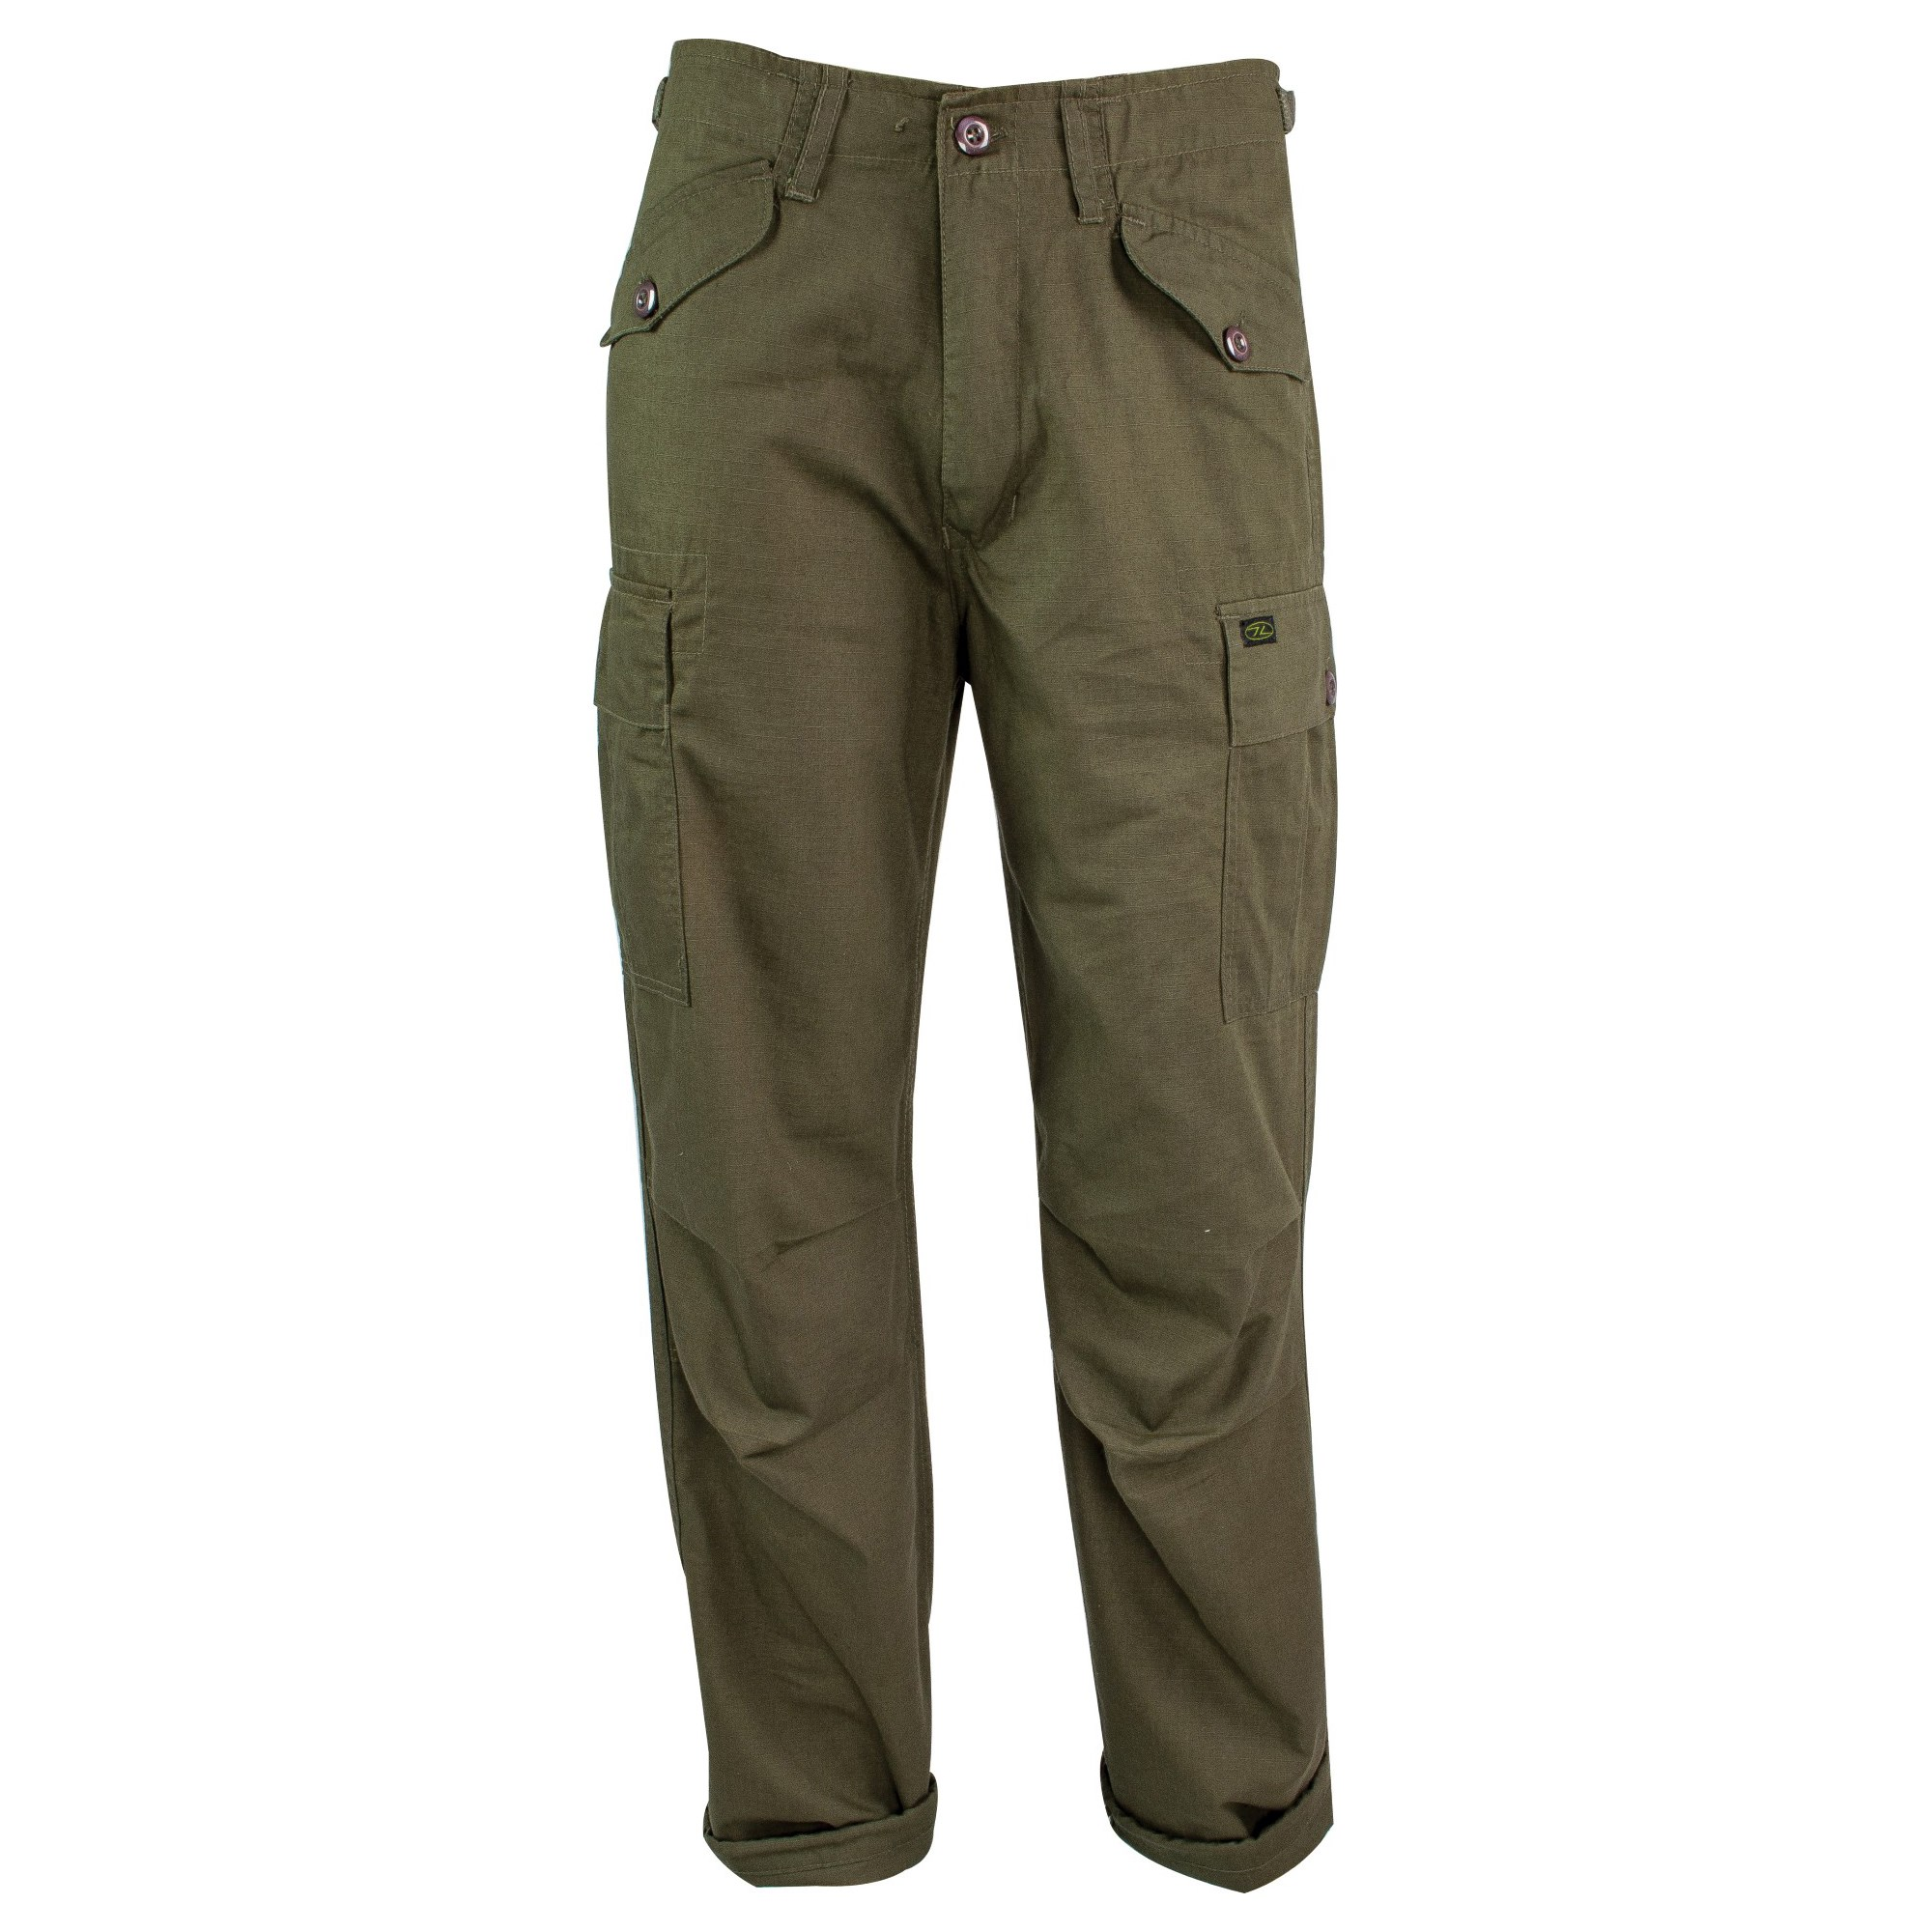 Nohavice M65 MILITARY STYLE rip-stop OLIVE